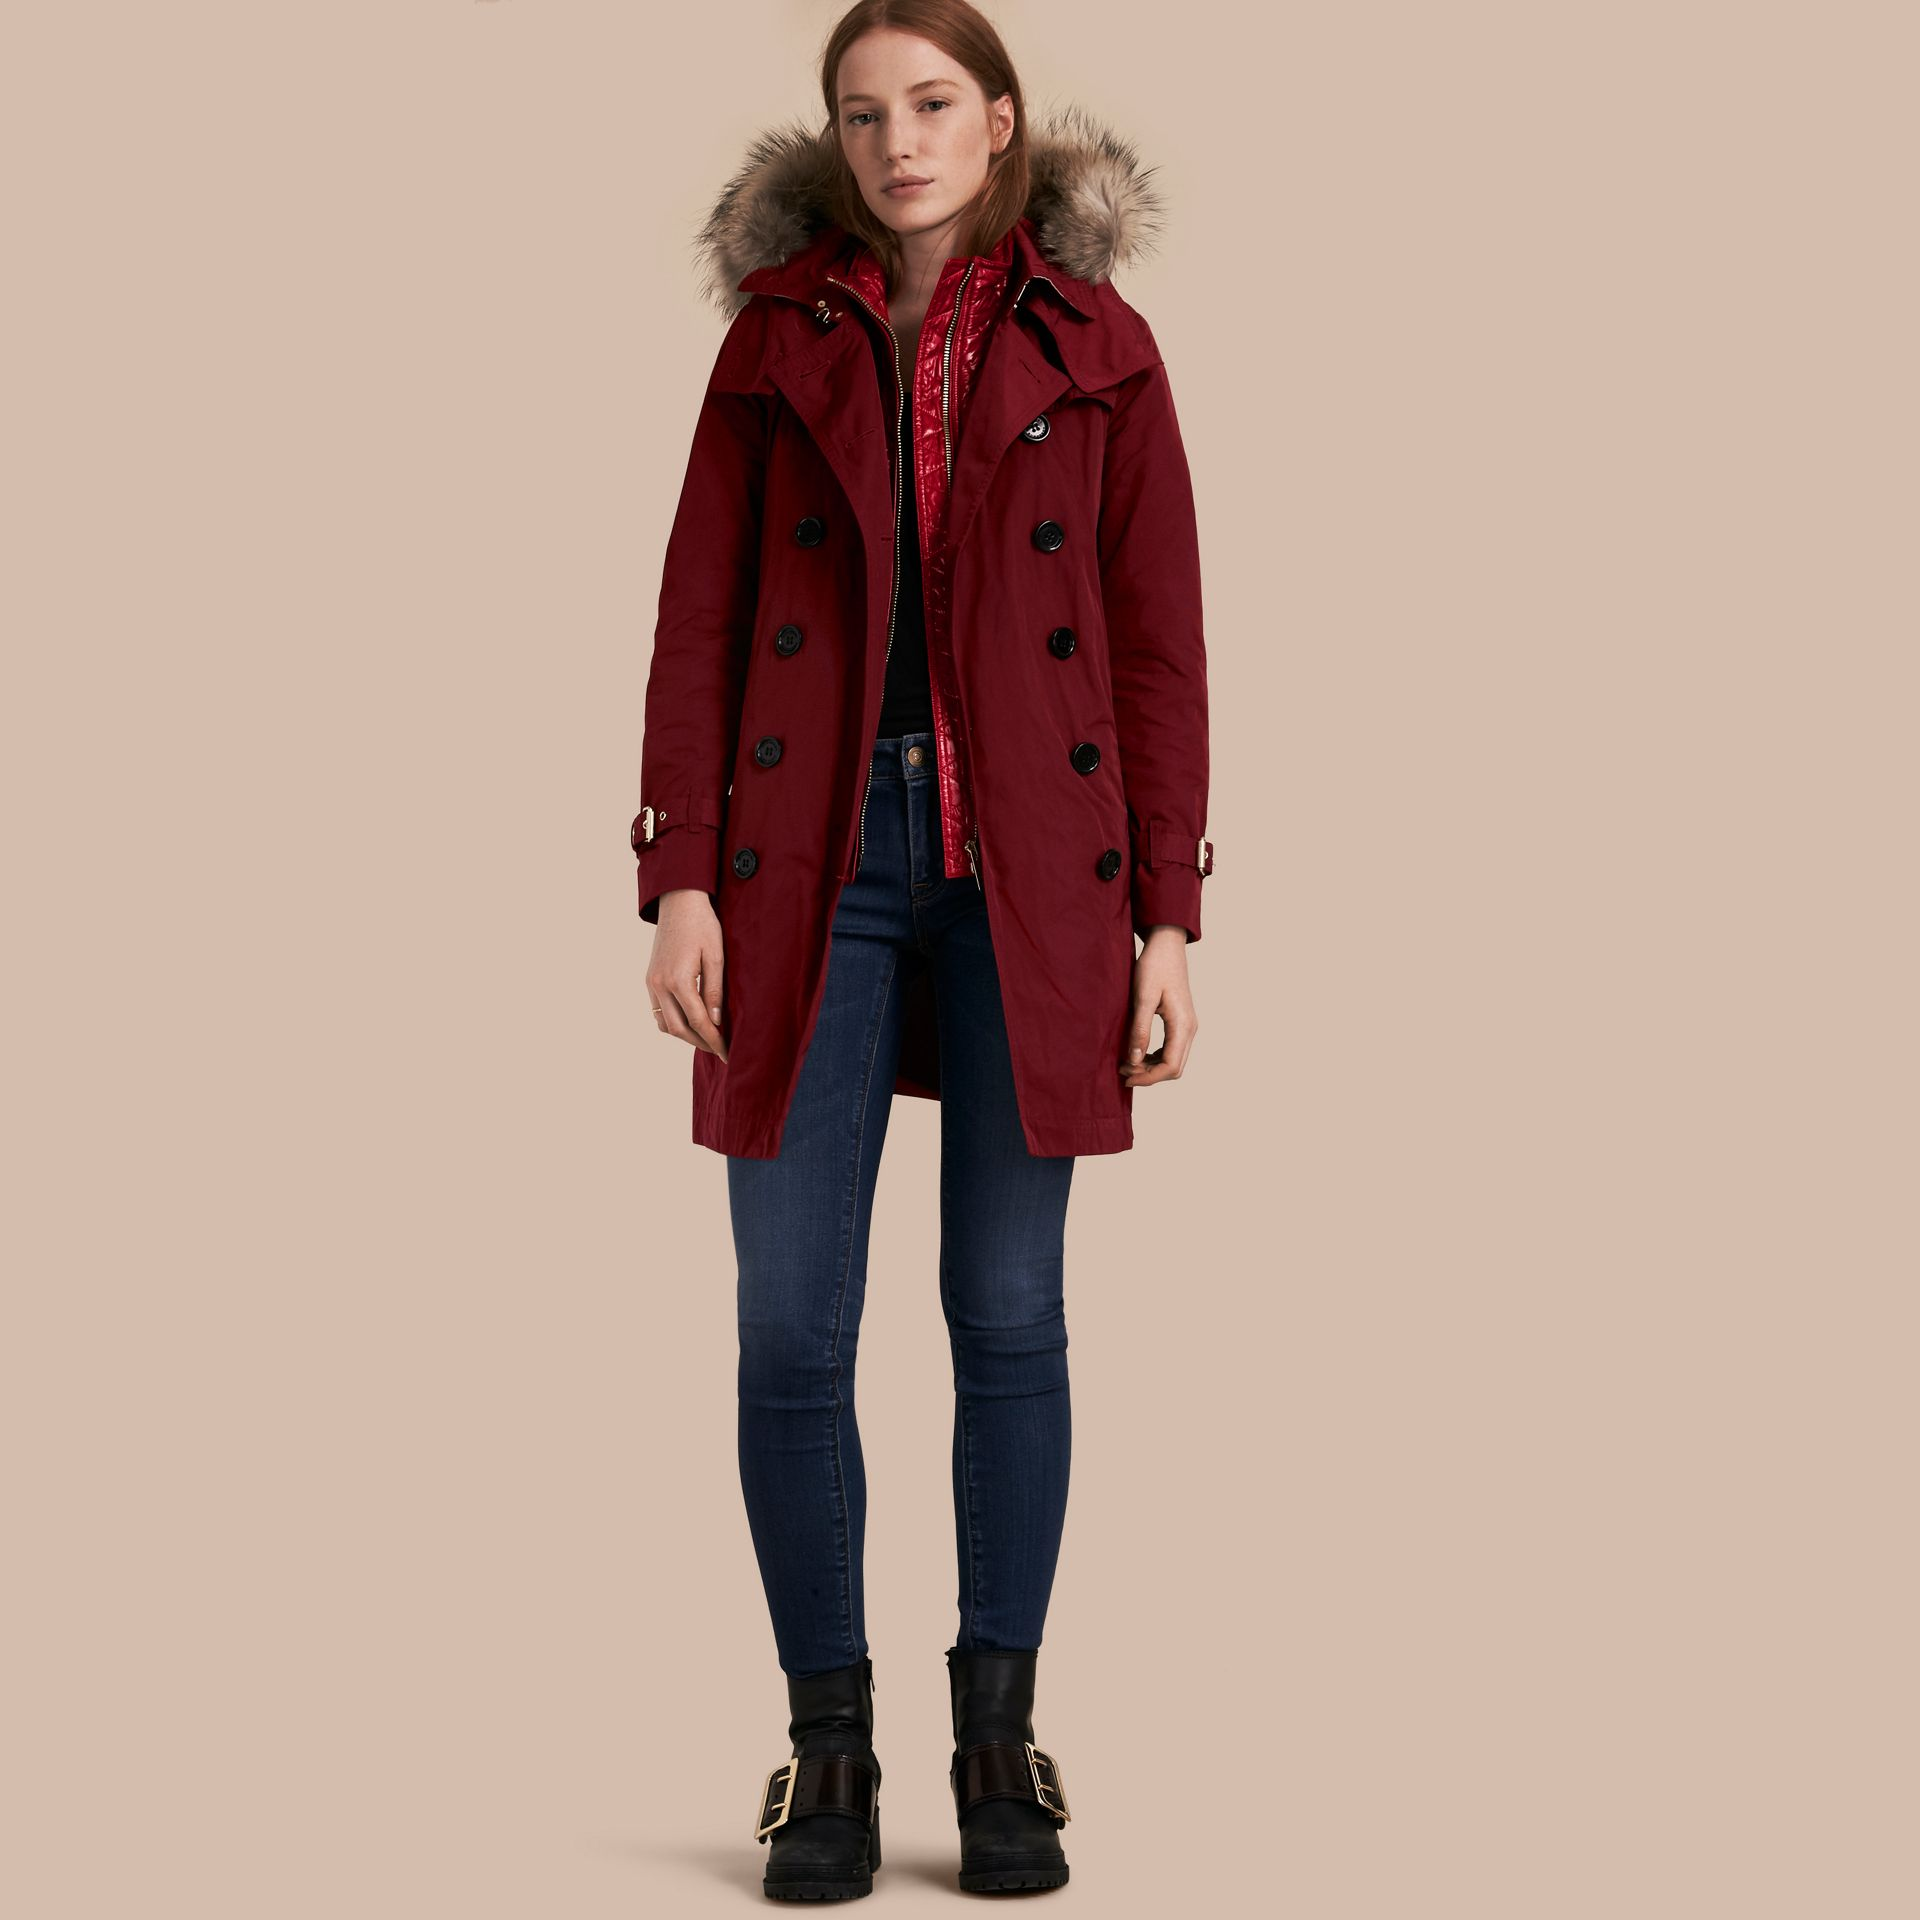 Garnet Raccoon Fur Trim Hood Trench Coat with Gilet - gallery image 1